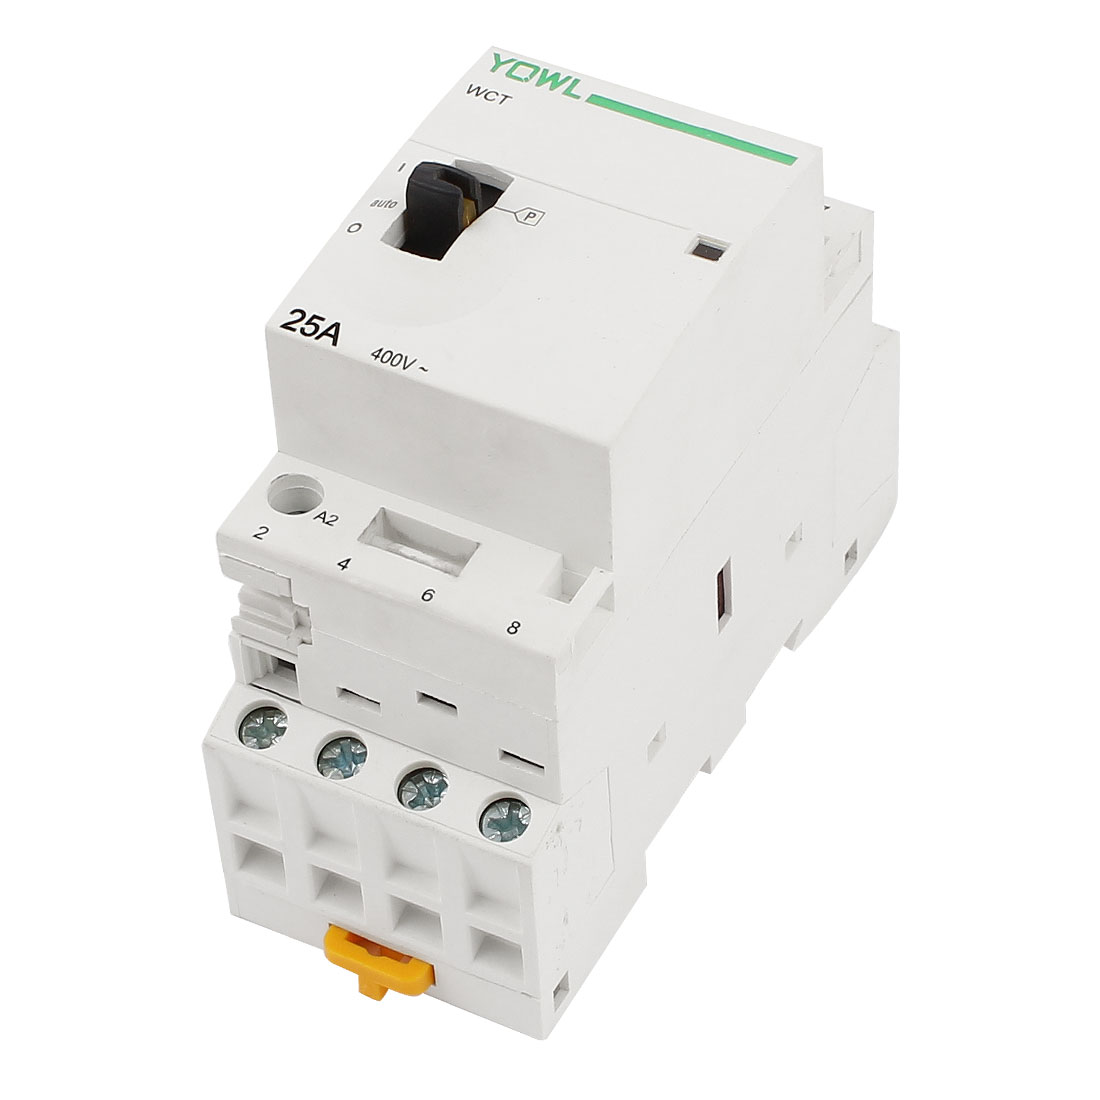 WCT-25A 4-Pole Household Home Electric Power Contactor AC 230V 25A